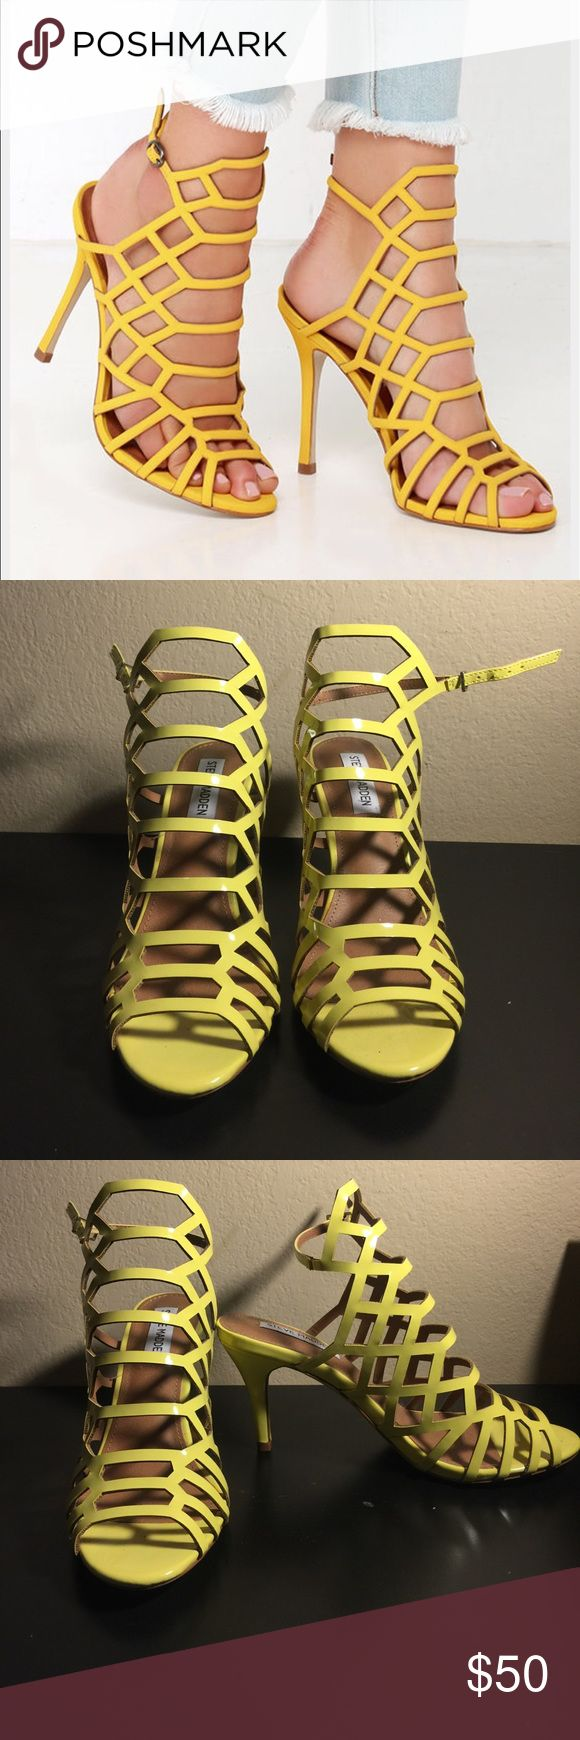 Steve Madden Slithur yellow strappy heels NEW NEW. Size 6.5. Never worn. Only tried on inside the house when I first got them. Sorry, no box because I didn't think I would sell them but I am willing to sell them with the reusable Steve Madden black bag. ***not exactly like the pair in the first picture. They have a lower heel and they are shiny yellow, not matte. Steve Madden Shoes Heels